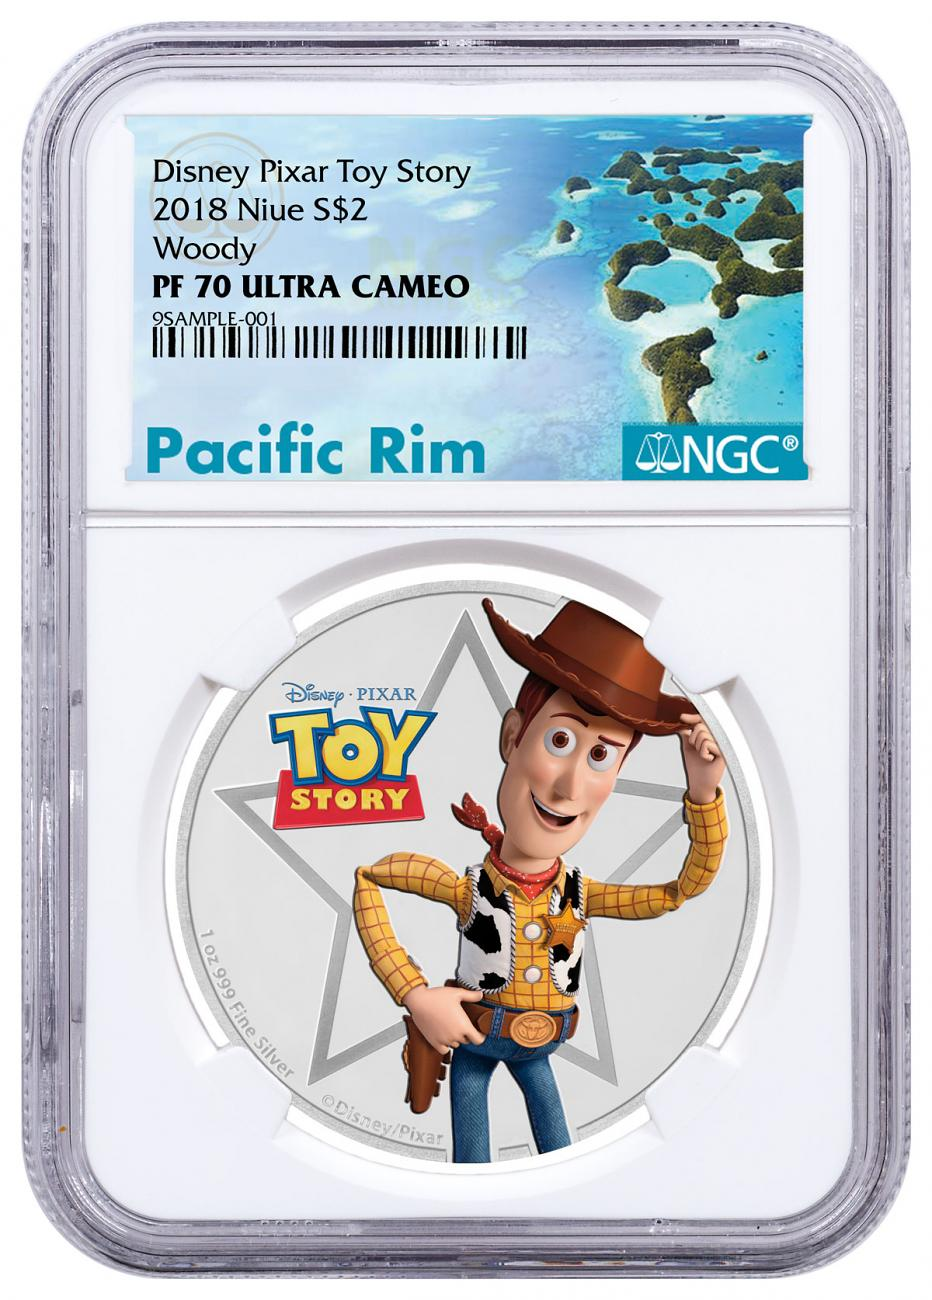 2018 Niue Disney Toy Story - Woody 1 oz Silver Colorized Proof $2 Coin NGC PF70 UC Exclusive Pacific Rim Label